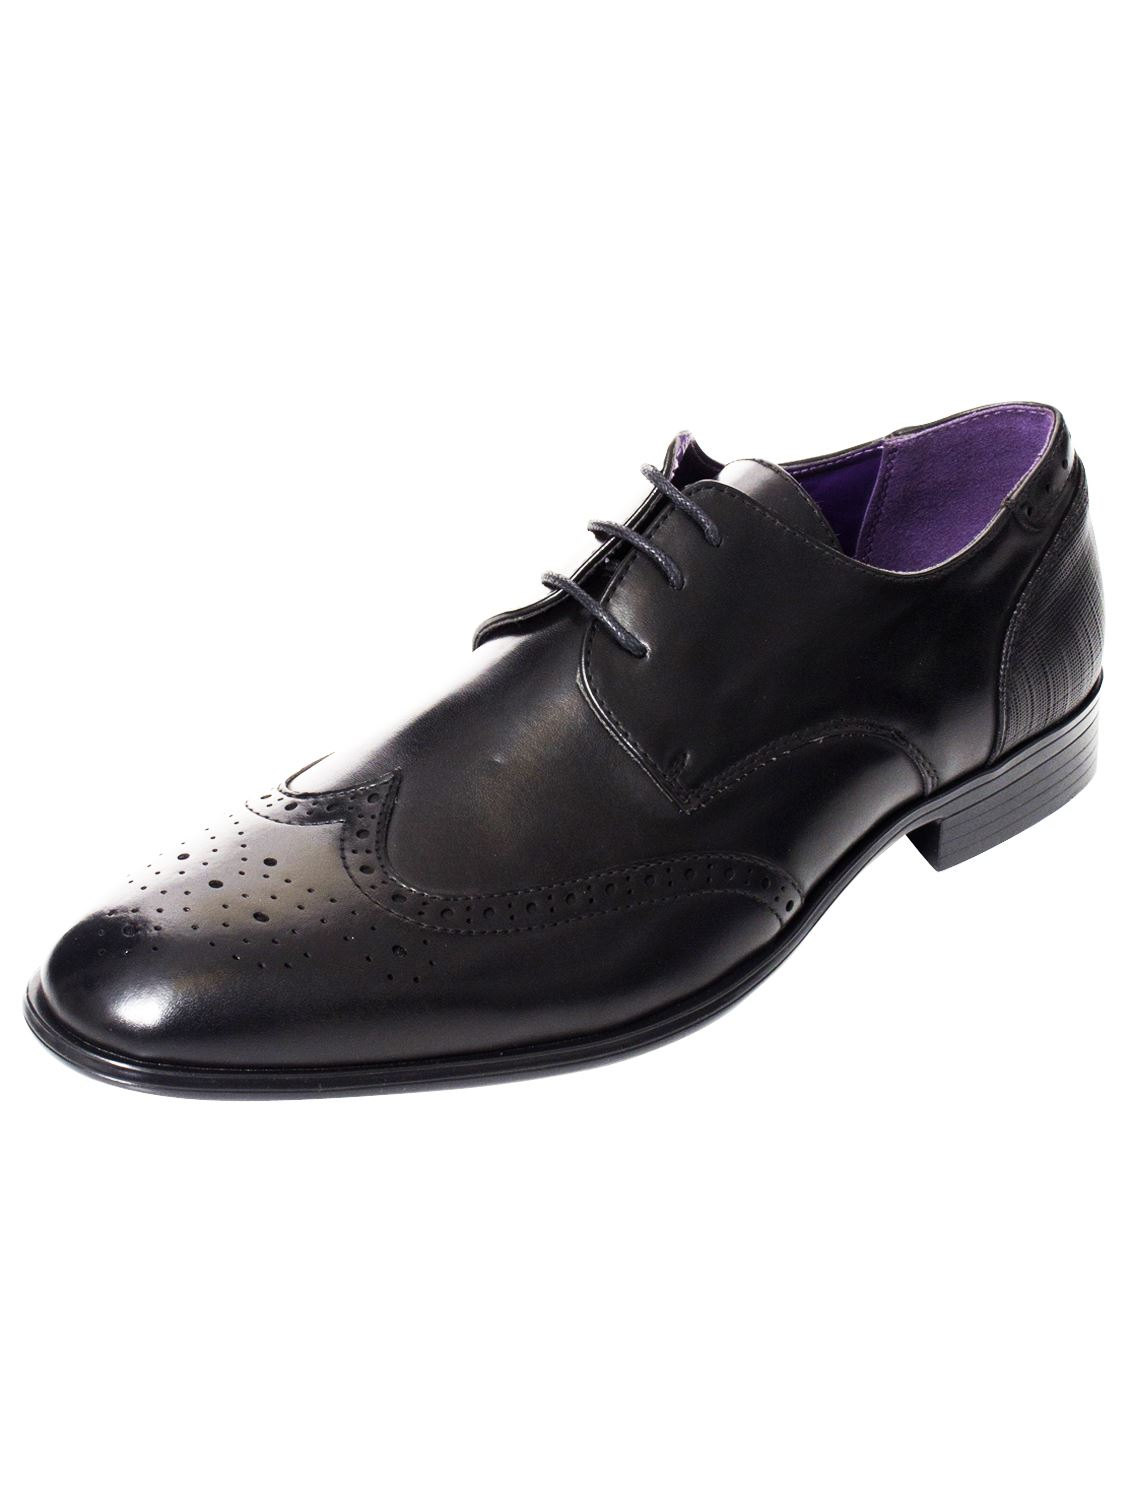 Mens-Faux-Leather-Shoes-Smart-Formal-Wedding-Office-Lace-Up-Designer-Brogues thumbnail 17